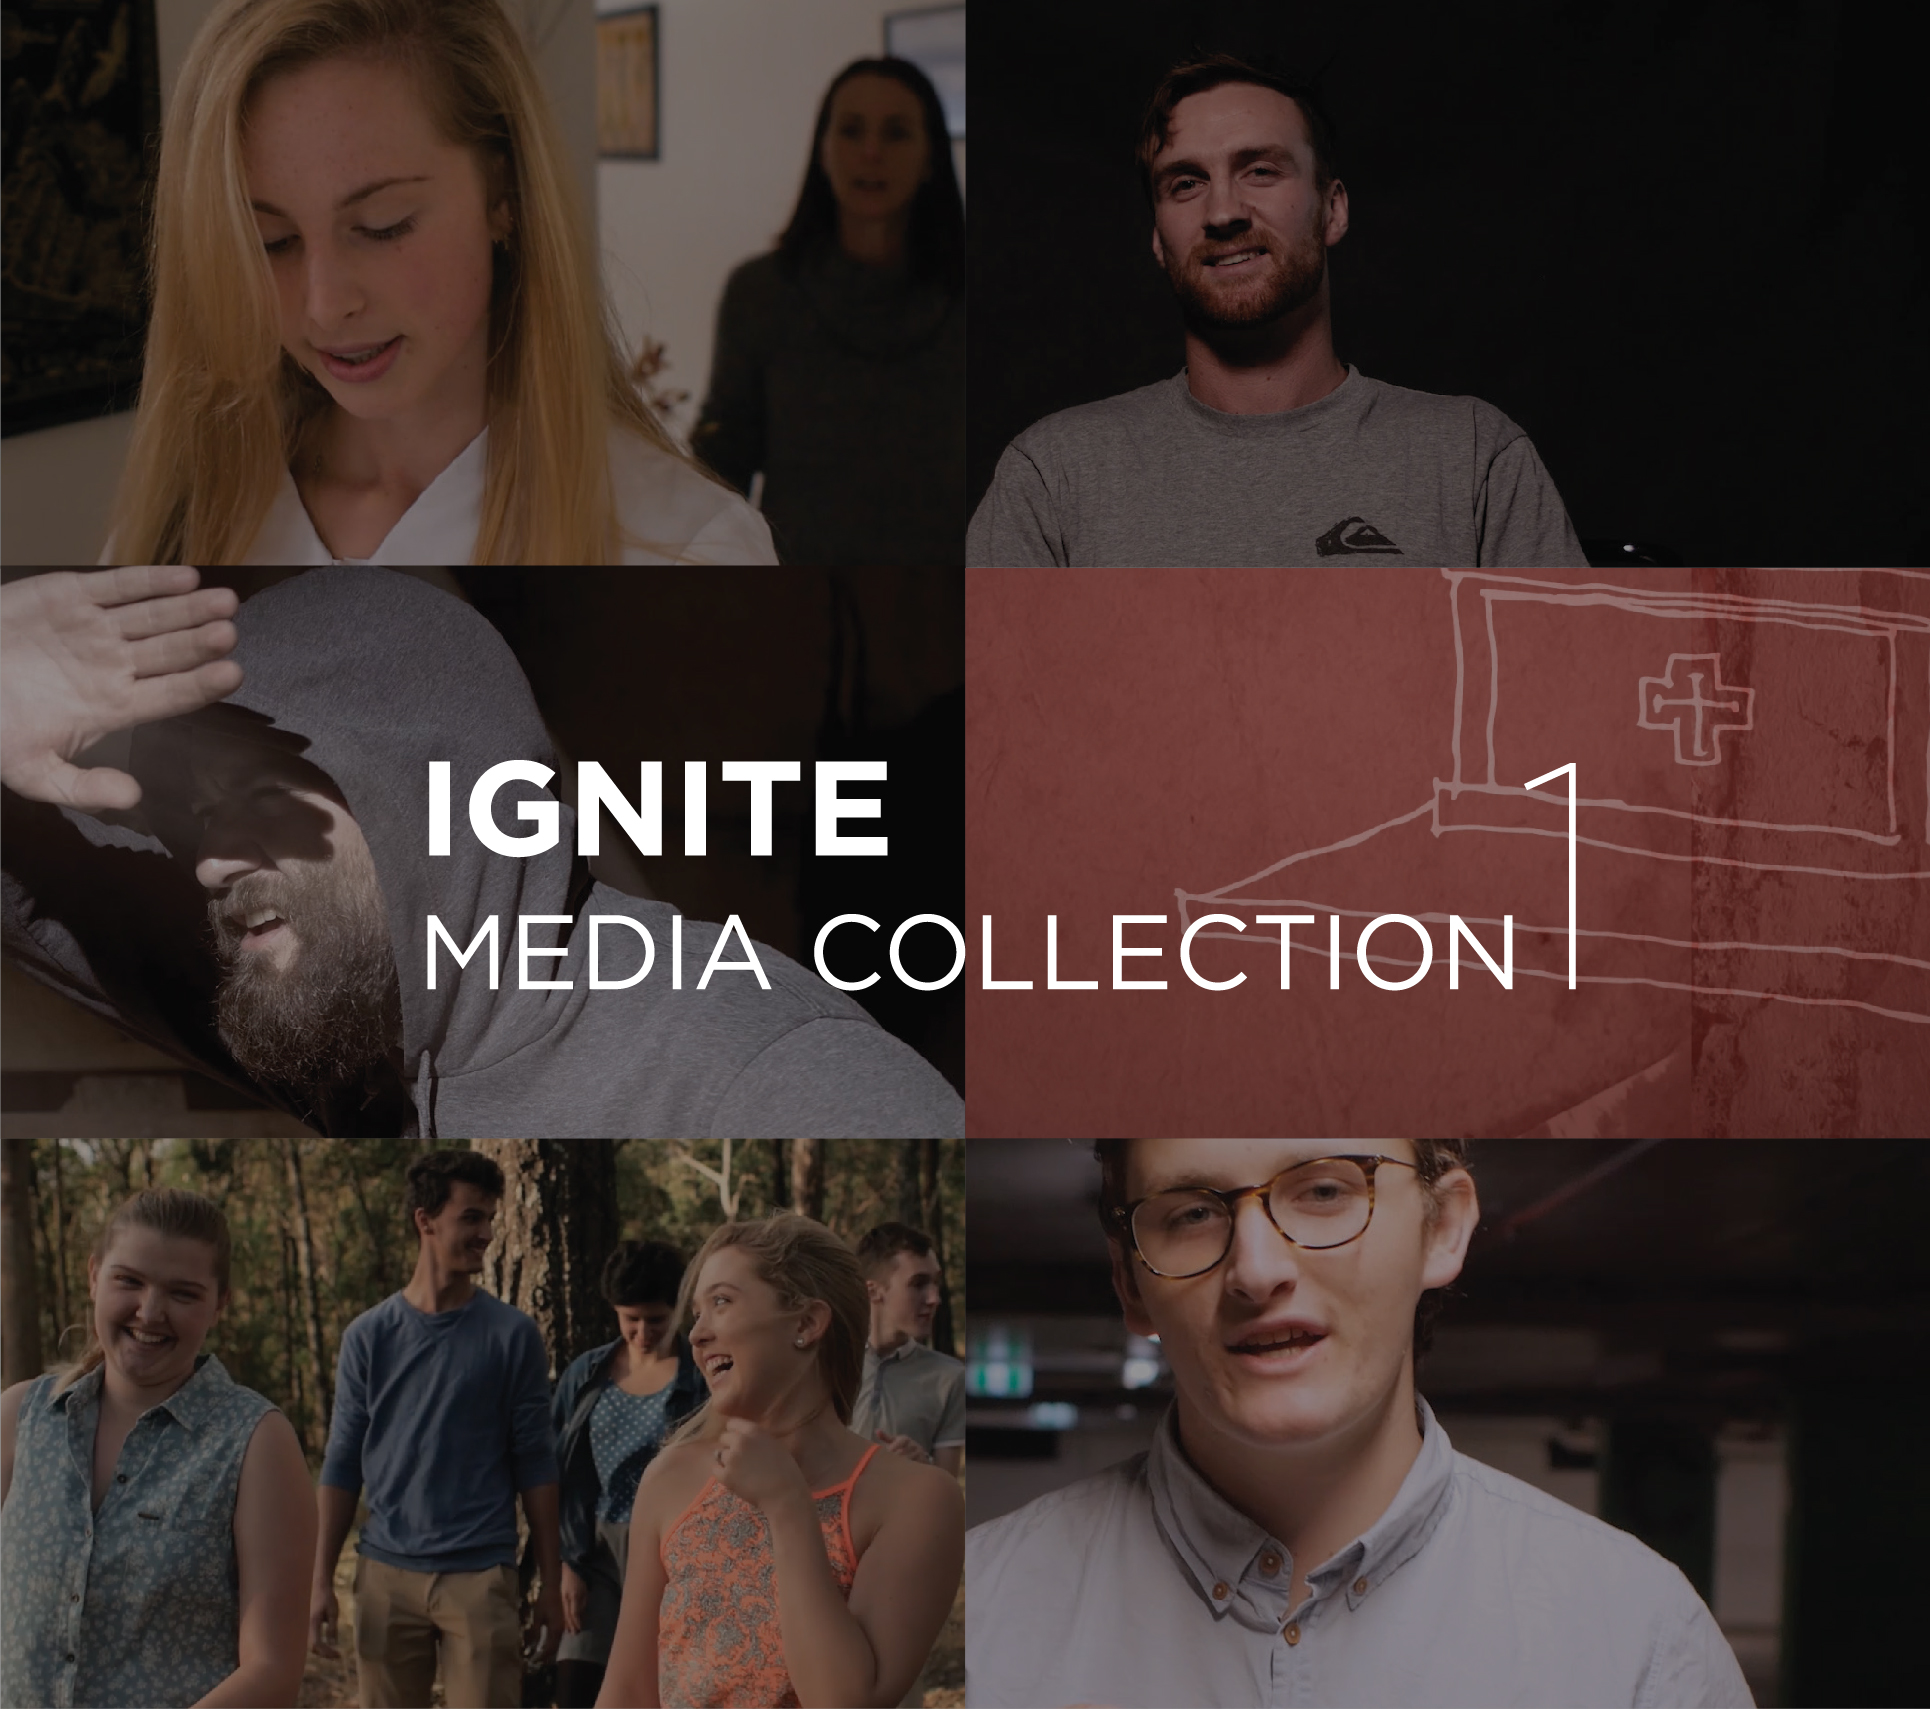 """Media Collection 1 - All the best Ignite Youth videos in one place.Media Collection USB. A collection of videos created by Ignite Youth to inspire, uplift and engage young people. Covering Mass, adoration, reconciliation & forgiveness, mercy, body image and more!Includes: """"One Body"""